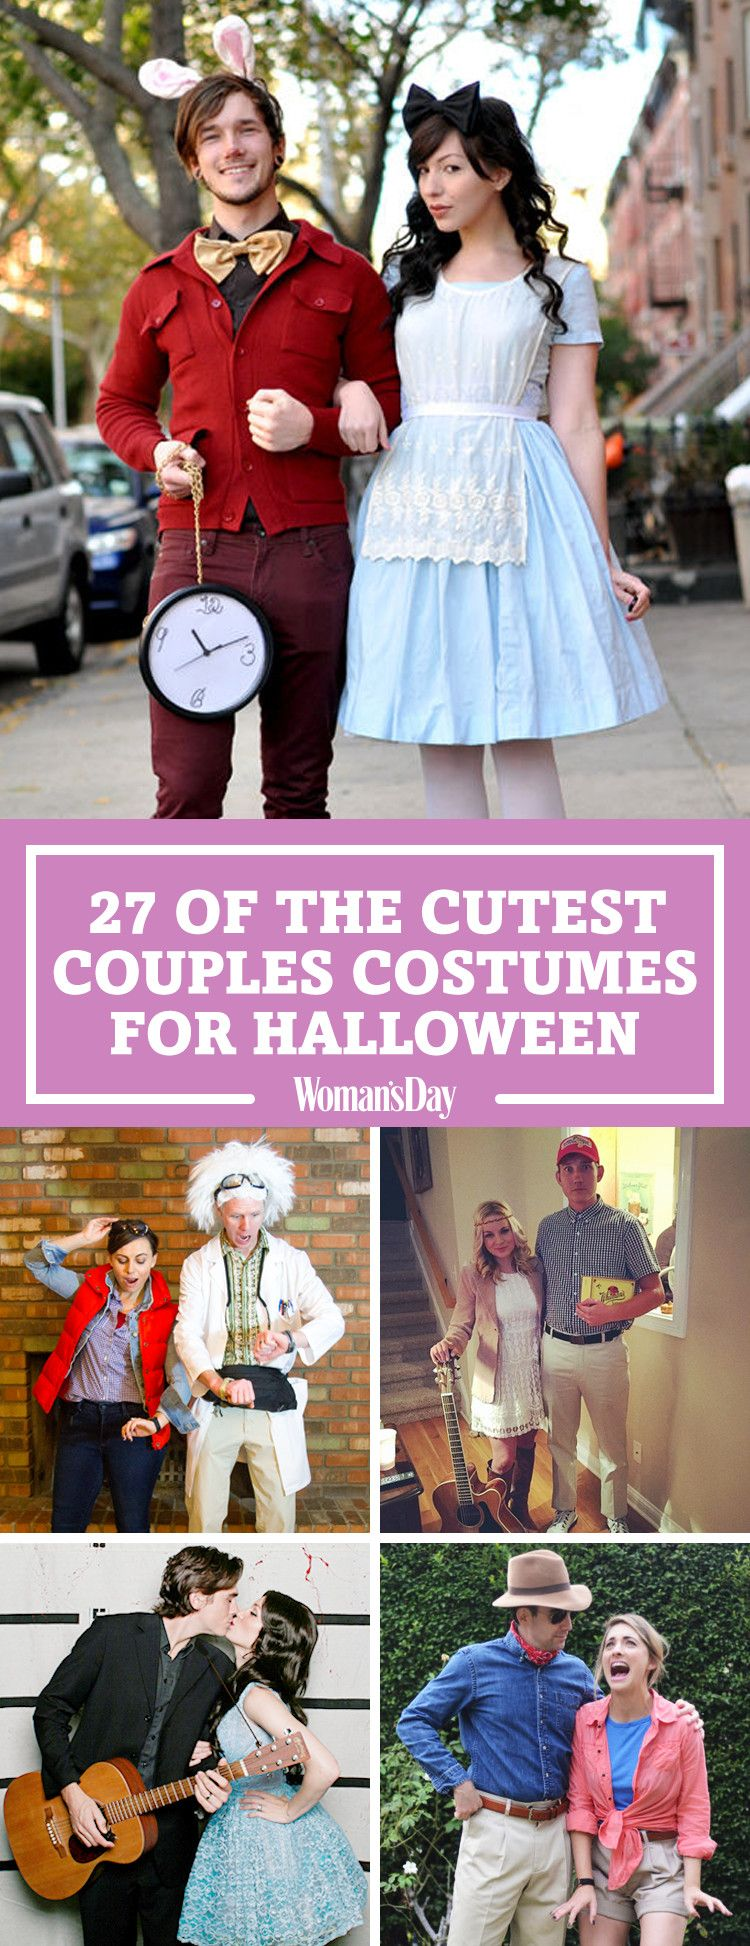 50+ Cute Couples Halloween Costumes 2017 - Best Ideas for Duo Costumes